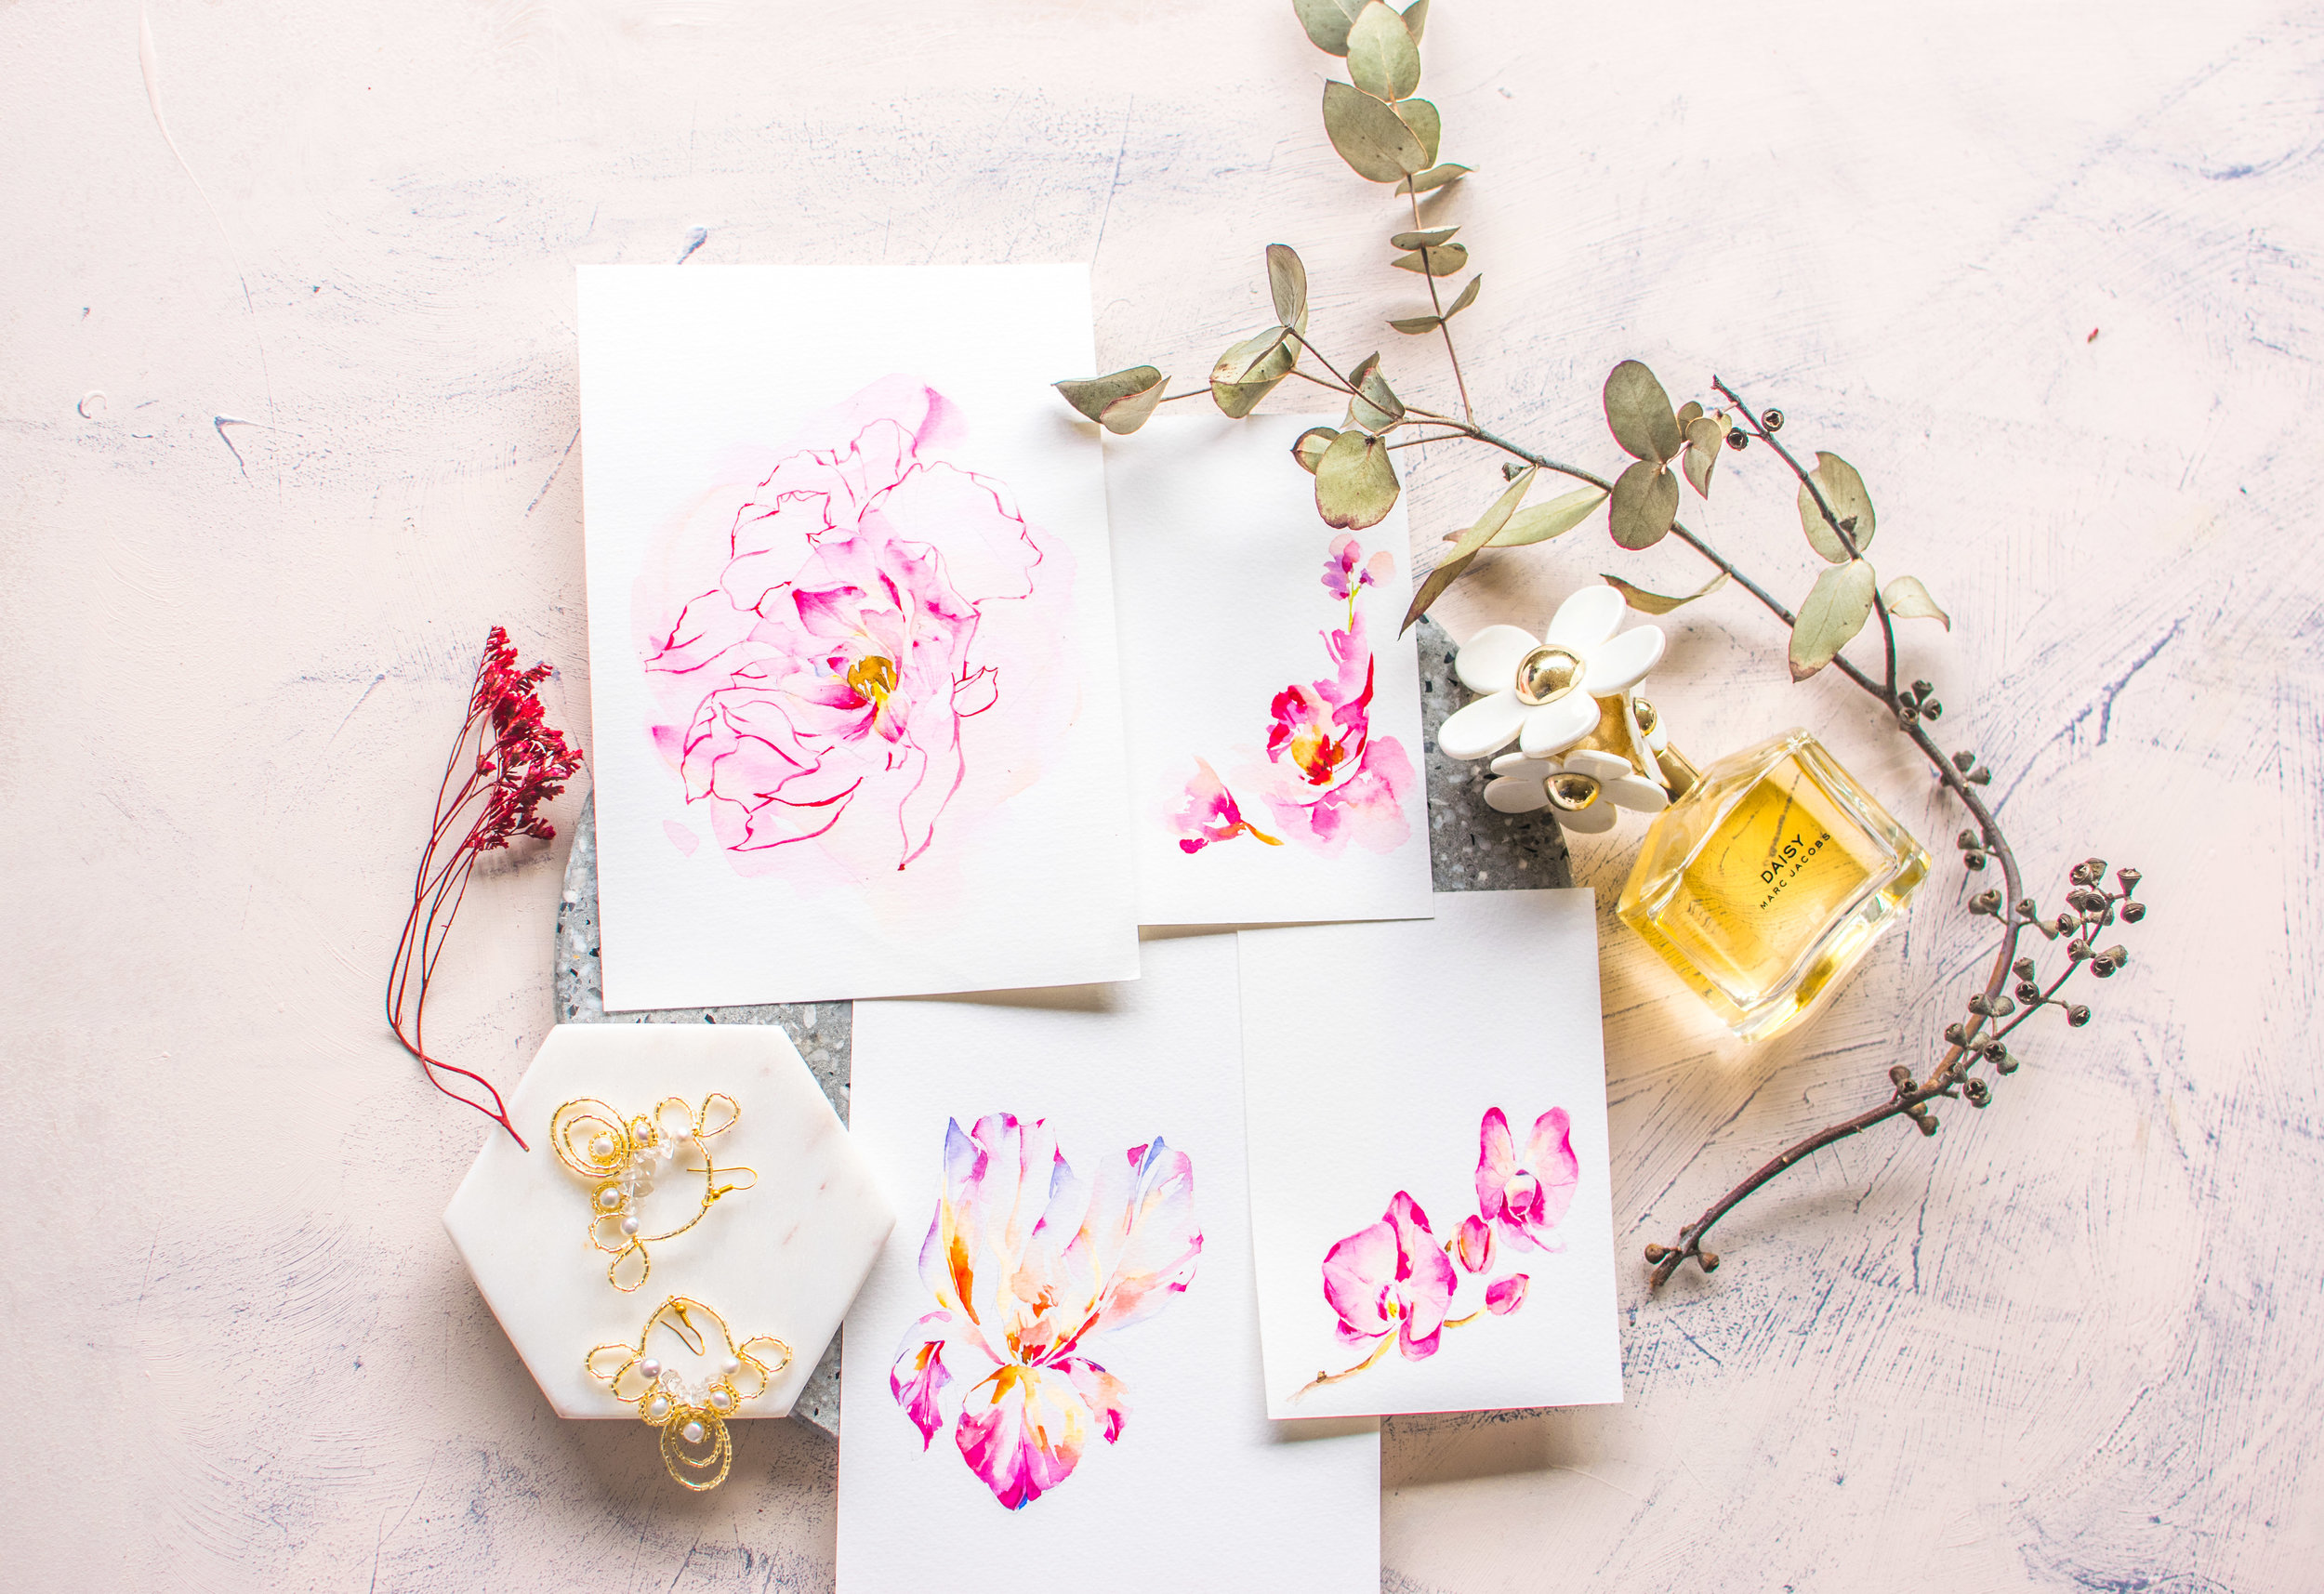 Hand Illustrated Designs - Hand painted watercolour cards for Mercedes Benz' Mother's Day activation event. We offer a variety of hand illustrated designs for every occasion.